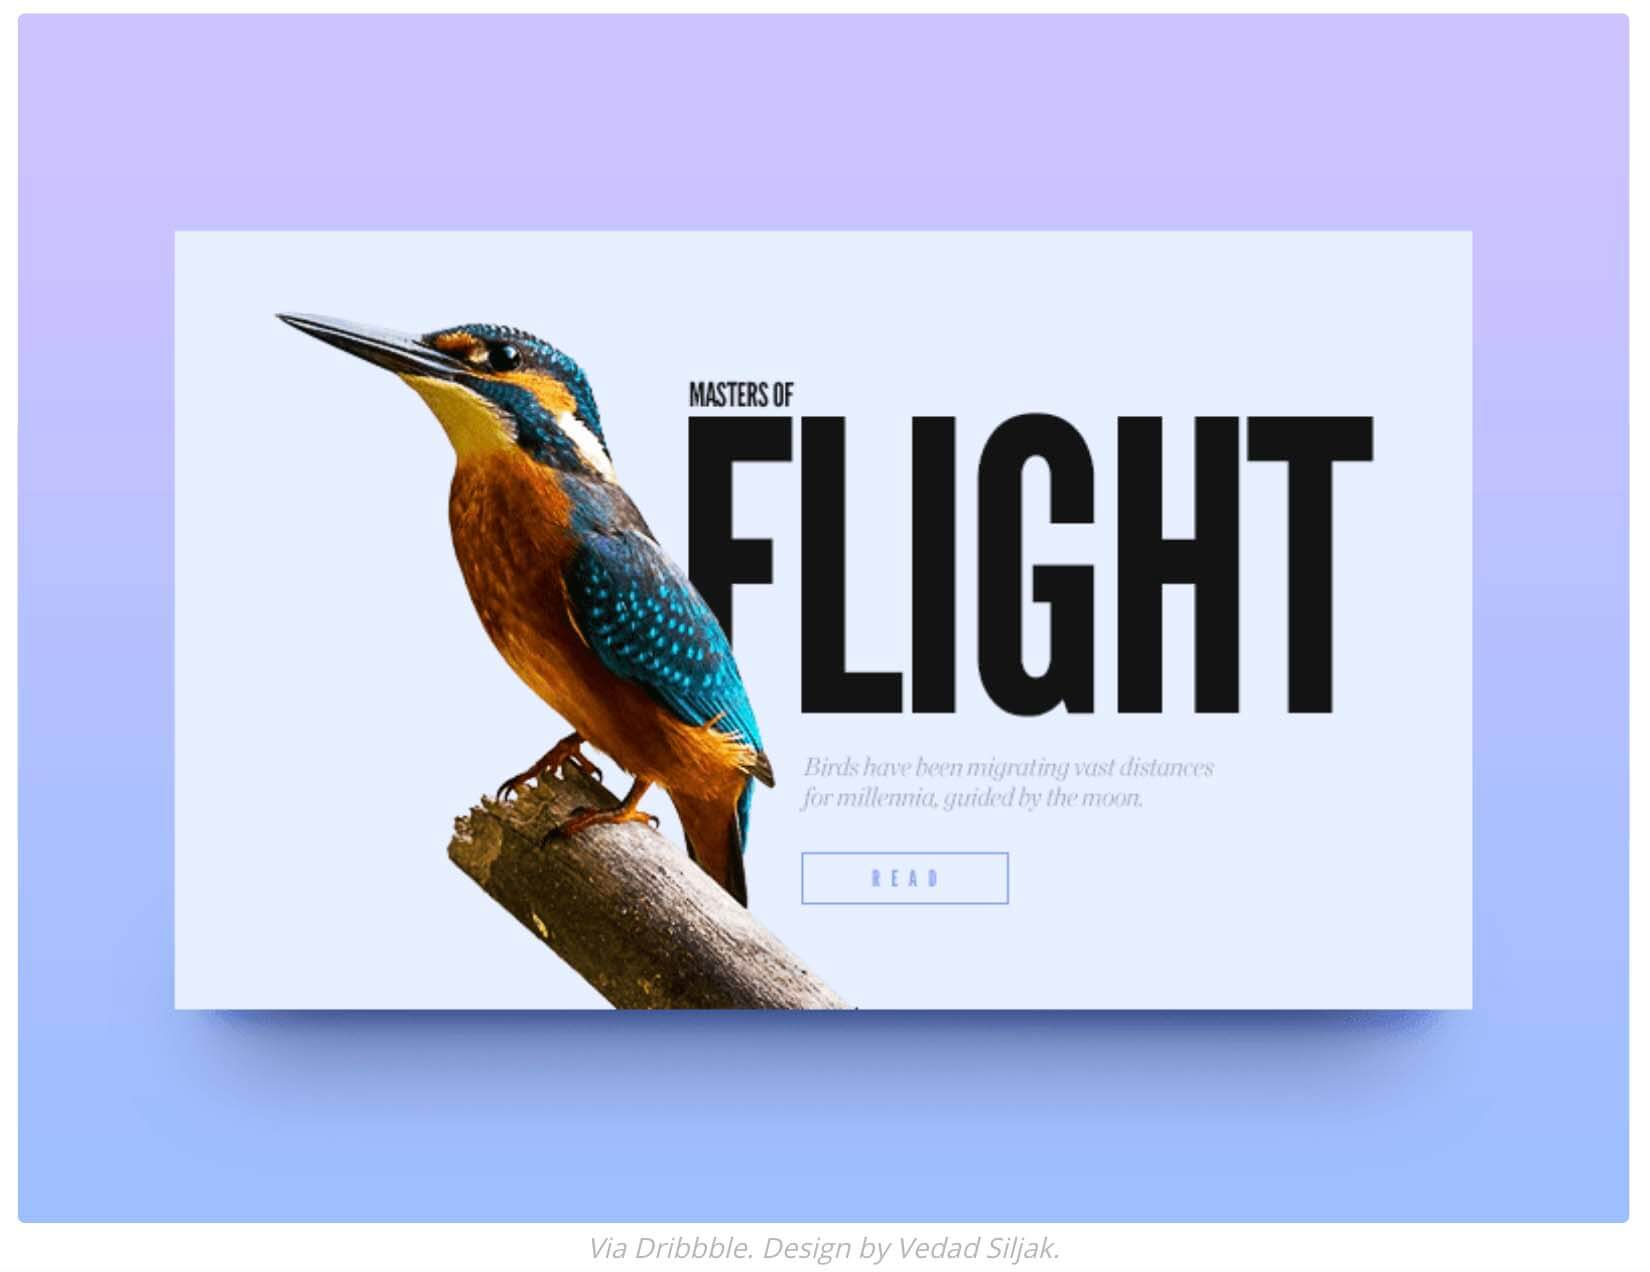 2020 Web Design Trends - Mixing Font with Photography and Graphics